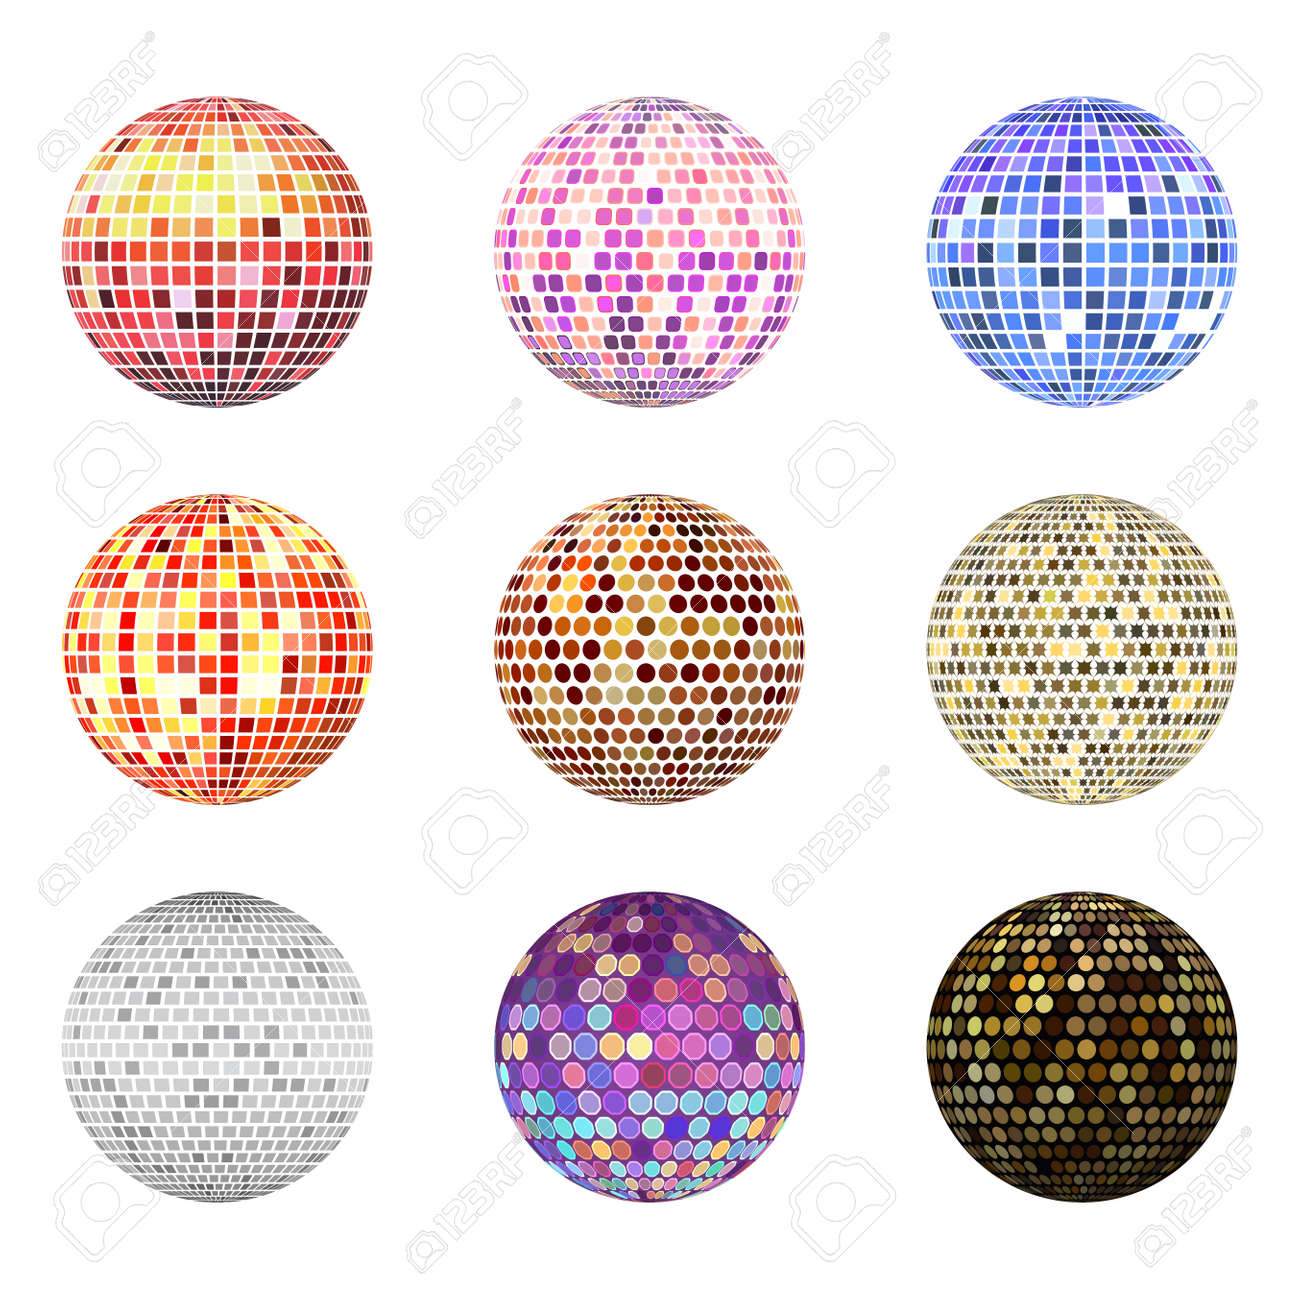 Disco ball discotheque music party night club dance equipment vector illustration. - 99323596